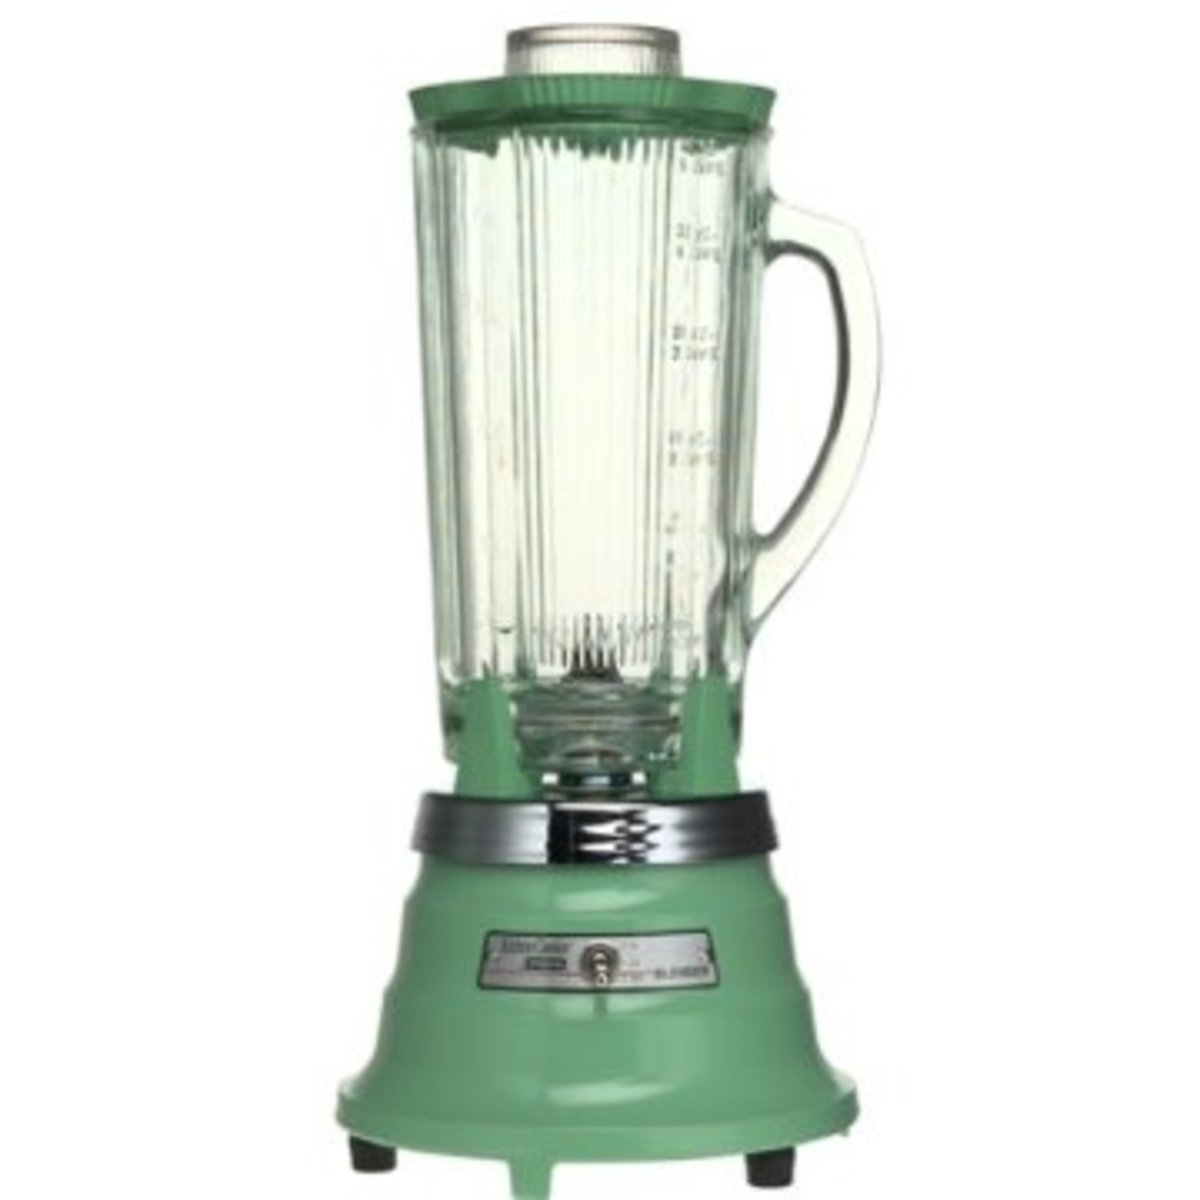 Waring modern blender in retro green